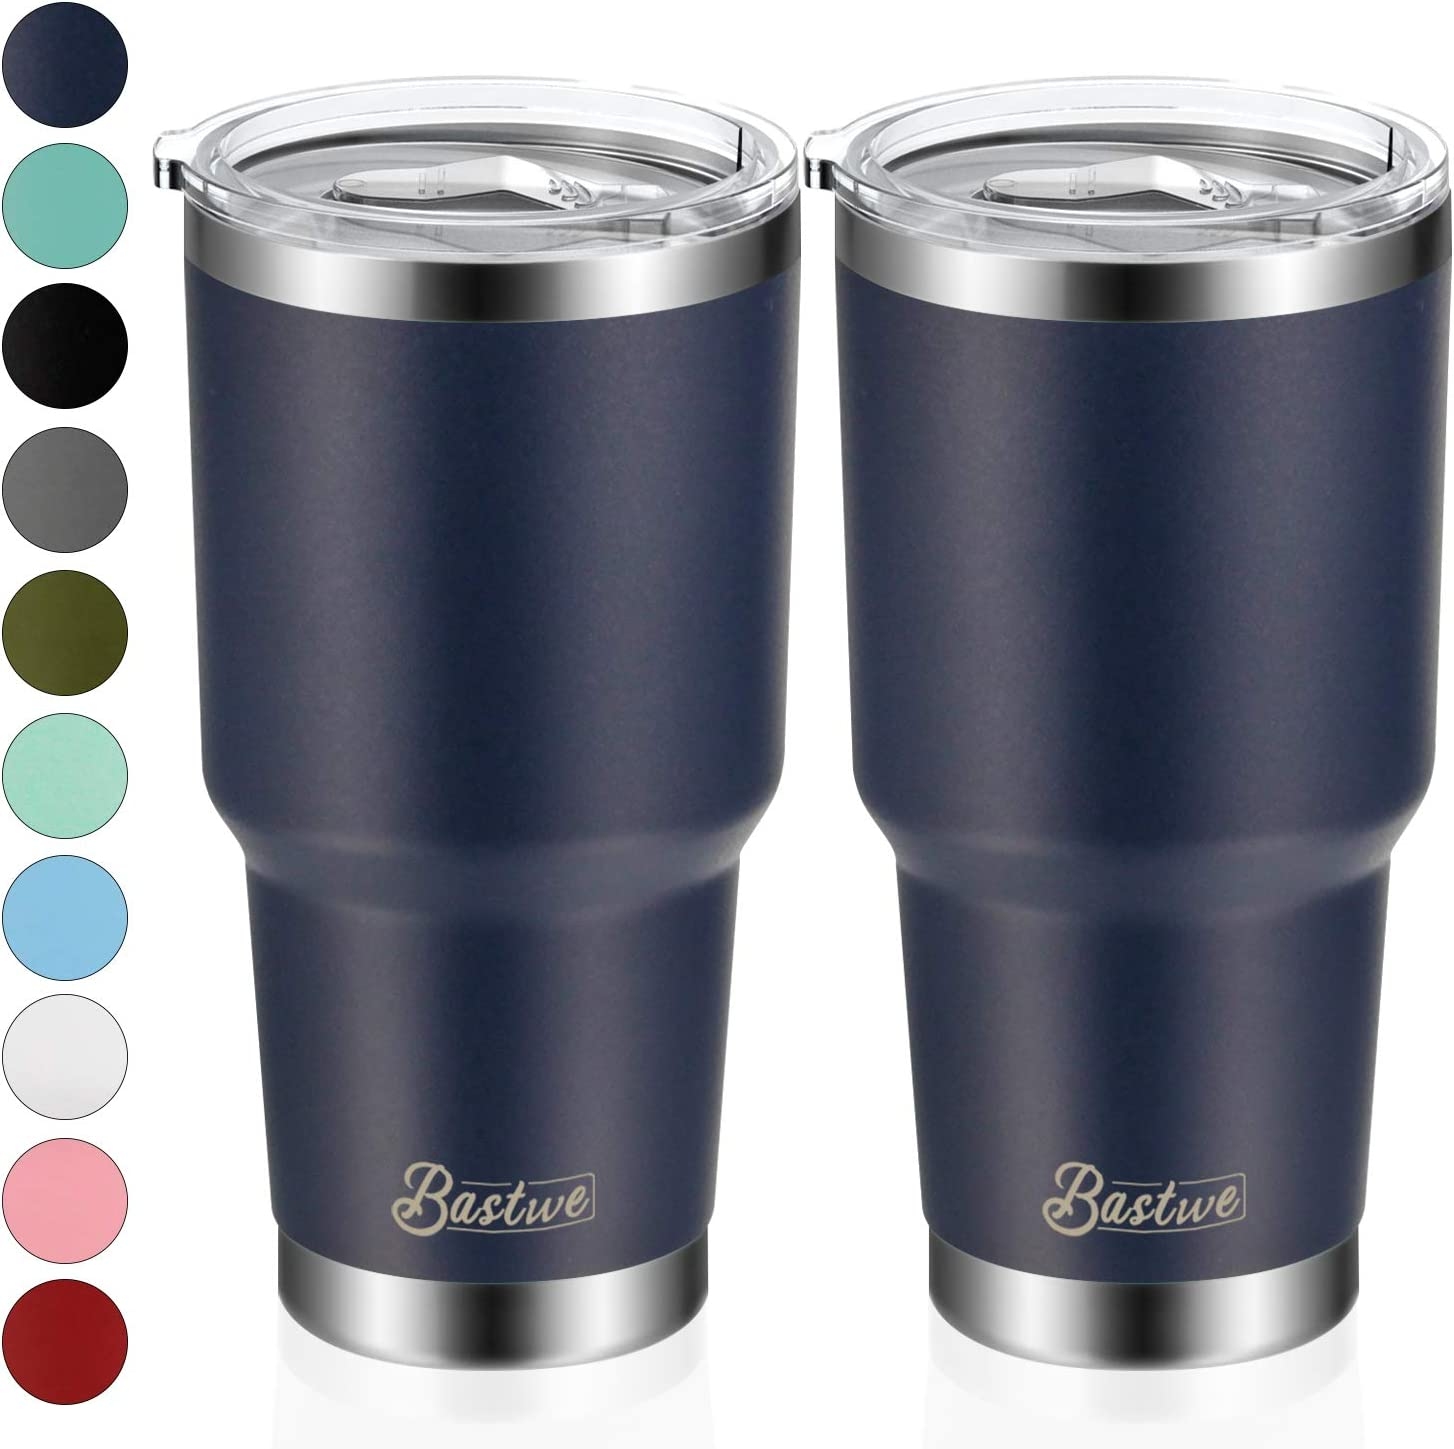 2 Pack 30oz Vacuum Insulated Tumblers, Bastwe Double Wall Stainless Steel Travel Mug with Lid and Straw for Home, Office, School, Works Great for Ice Drink, Hot Beverage (Navy)